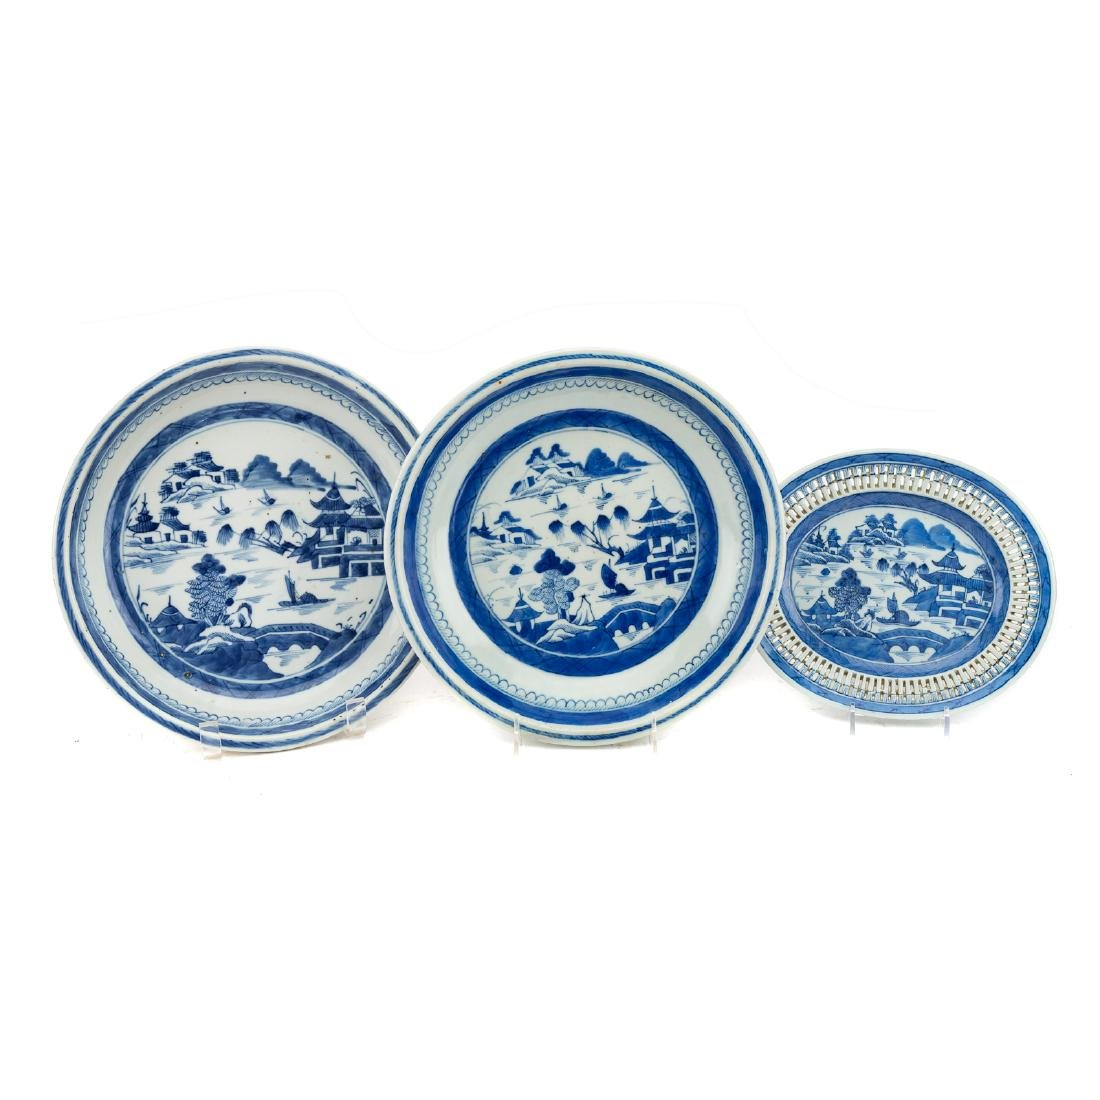 Seven Chinese Export Canton porcelain objects - 2